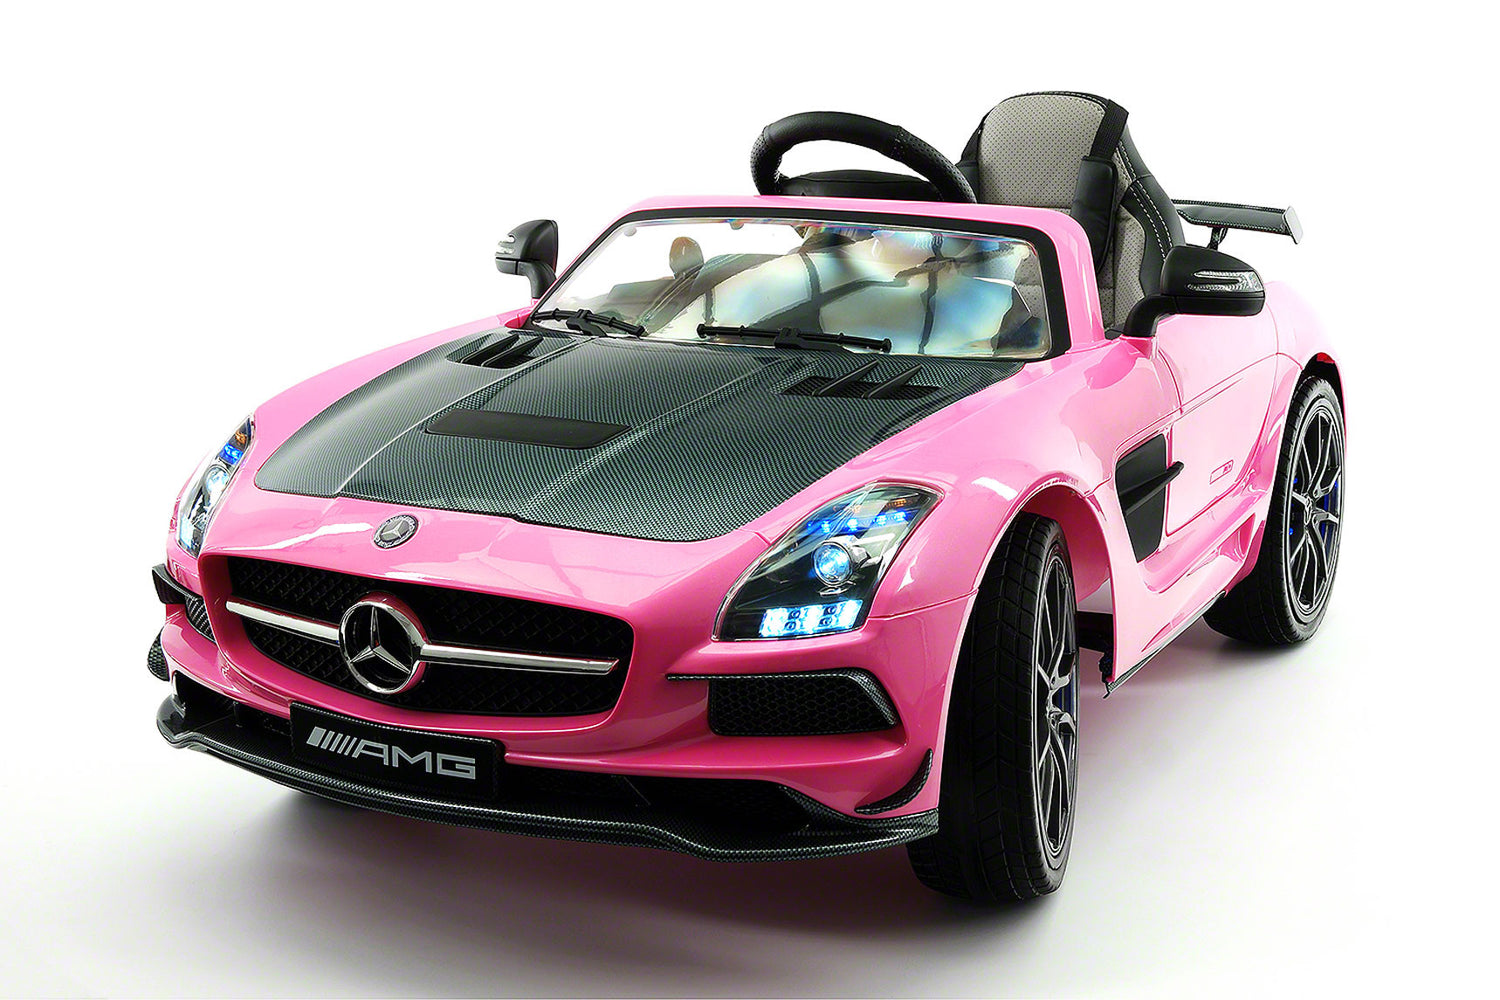 Mercedes SLS AMG Final Edition 12V Kids Ride On Car With Parental Remote |  Pink